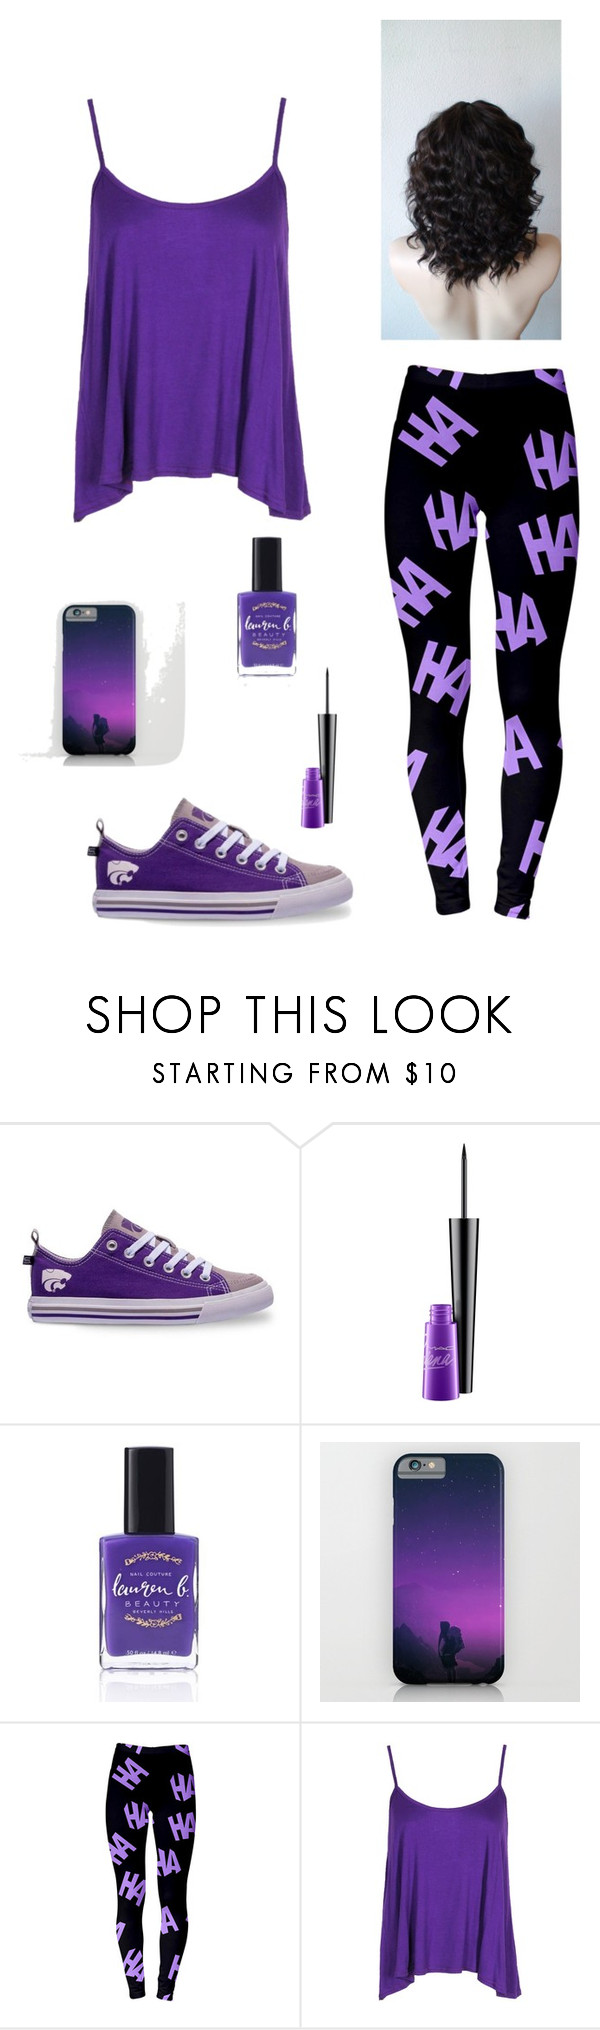 """""""The Purple Outfit"""" by helplessthing ❤ liked on Polyvore featuring Skicks, MAC Cosmetics, Lauren B. Beauty and Boohoo"""